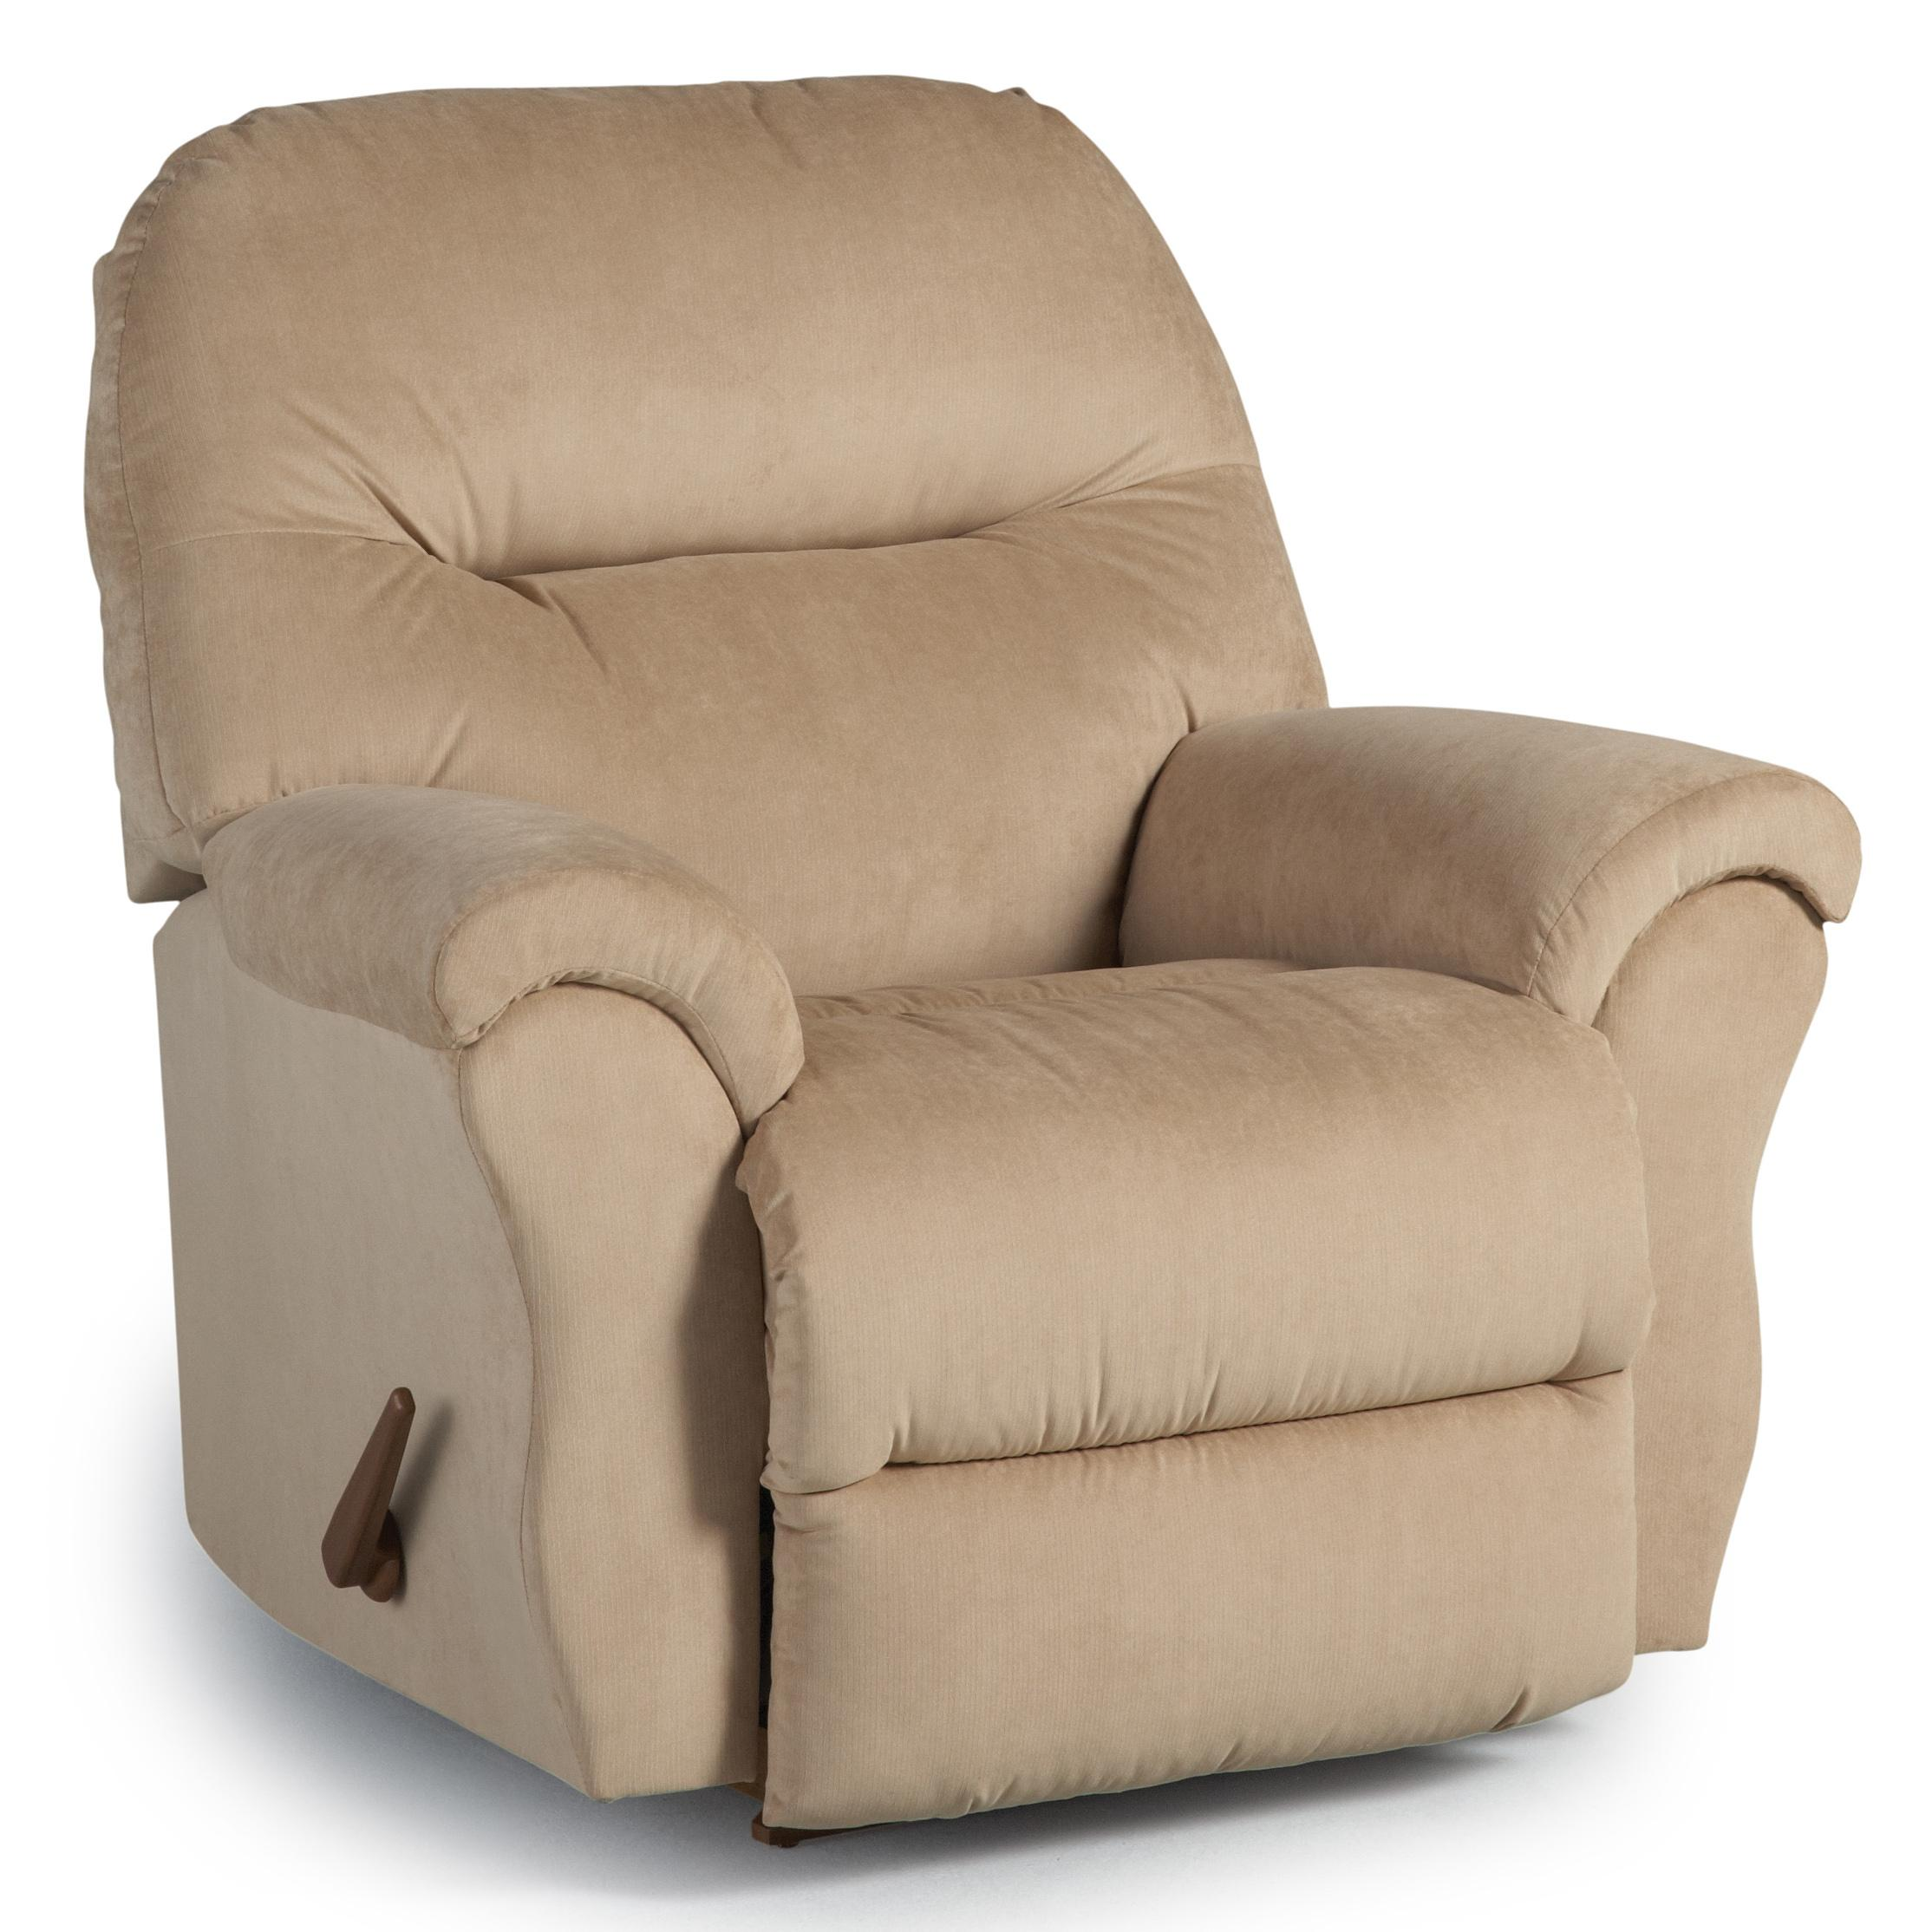 Medium Recliners Bodie Rocker Recliner by Best Home Furnishings at Best Home Furnishings